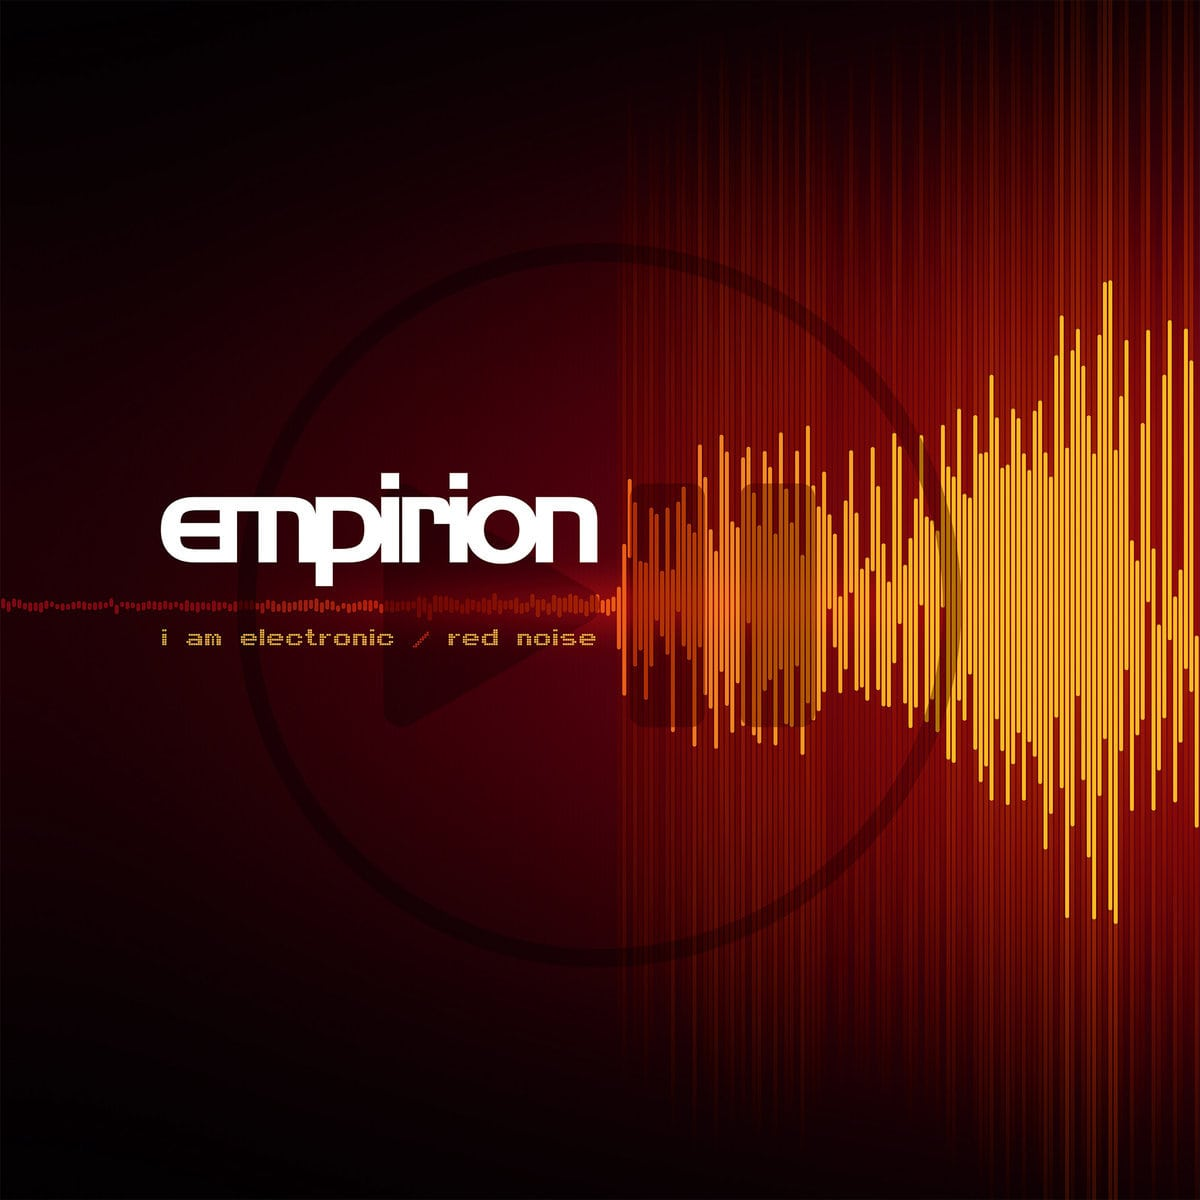 Empirion returns with double sided EP on vinyl (and CD):'I Am Electronic/ Red Noise' - check out the first track